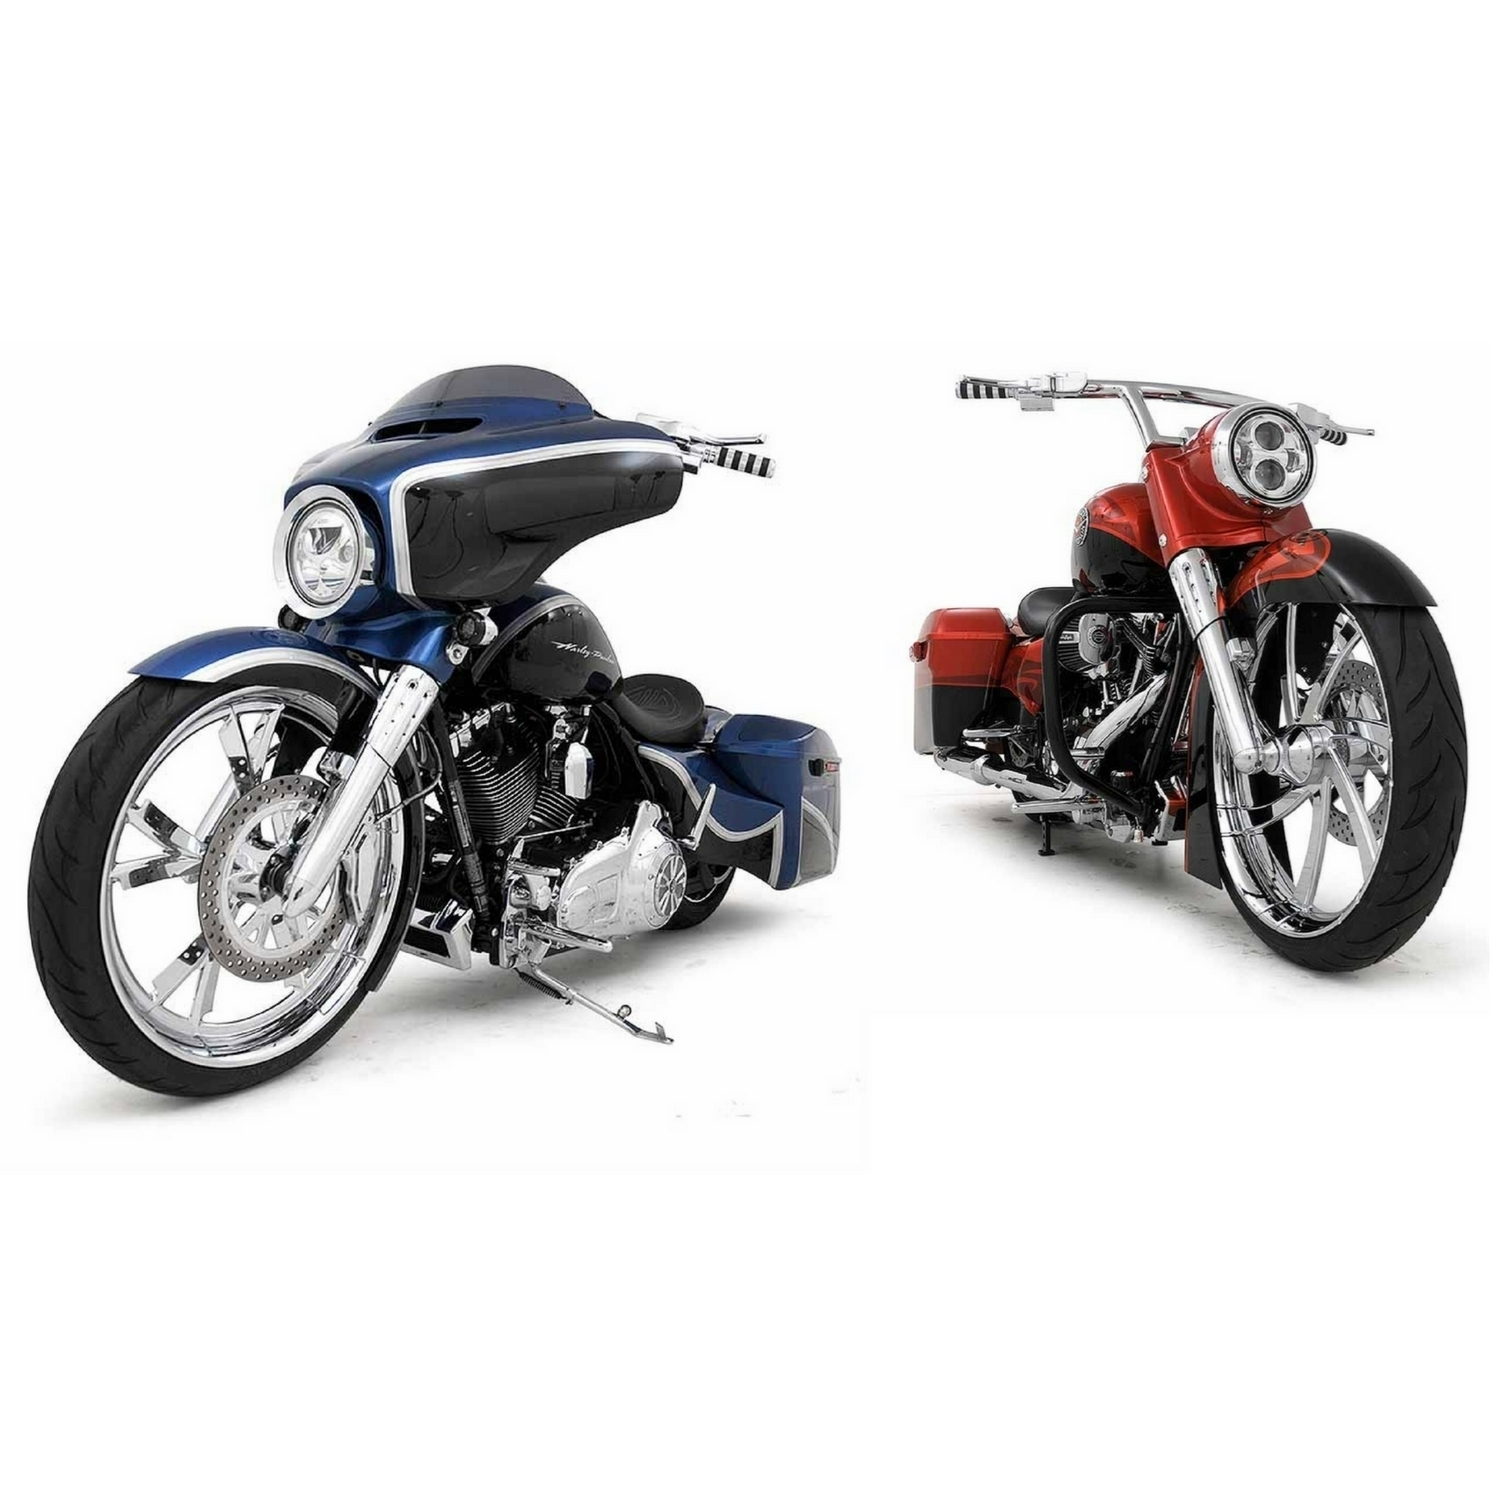 Picture of FL/Touring - Street Glide & Road King 2009 - 2013  26'' front wheel